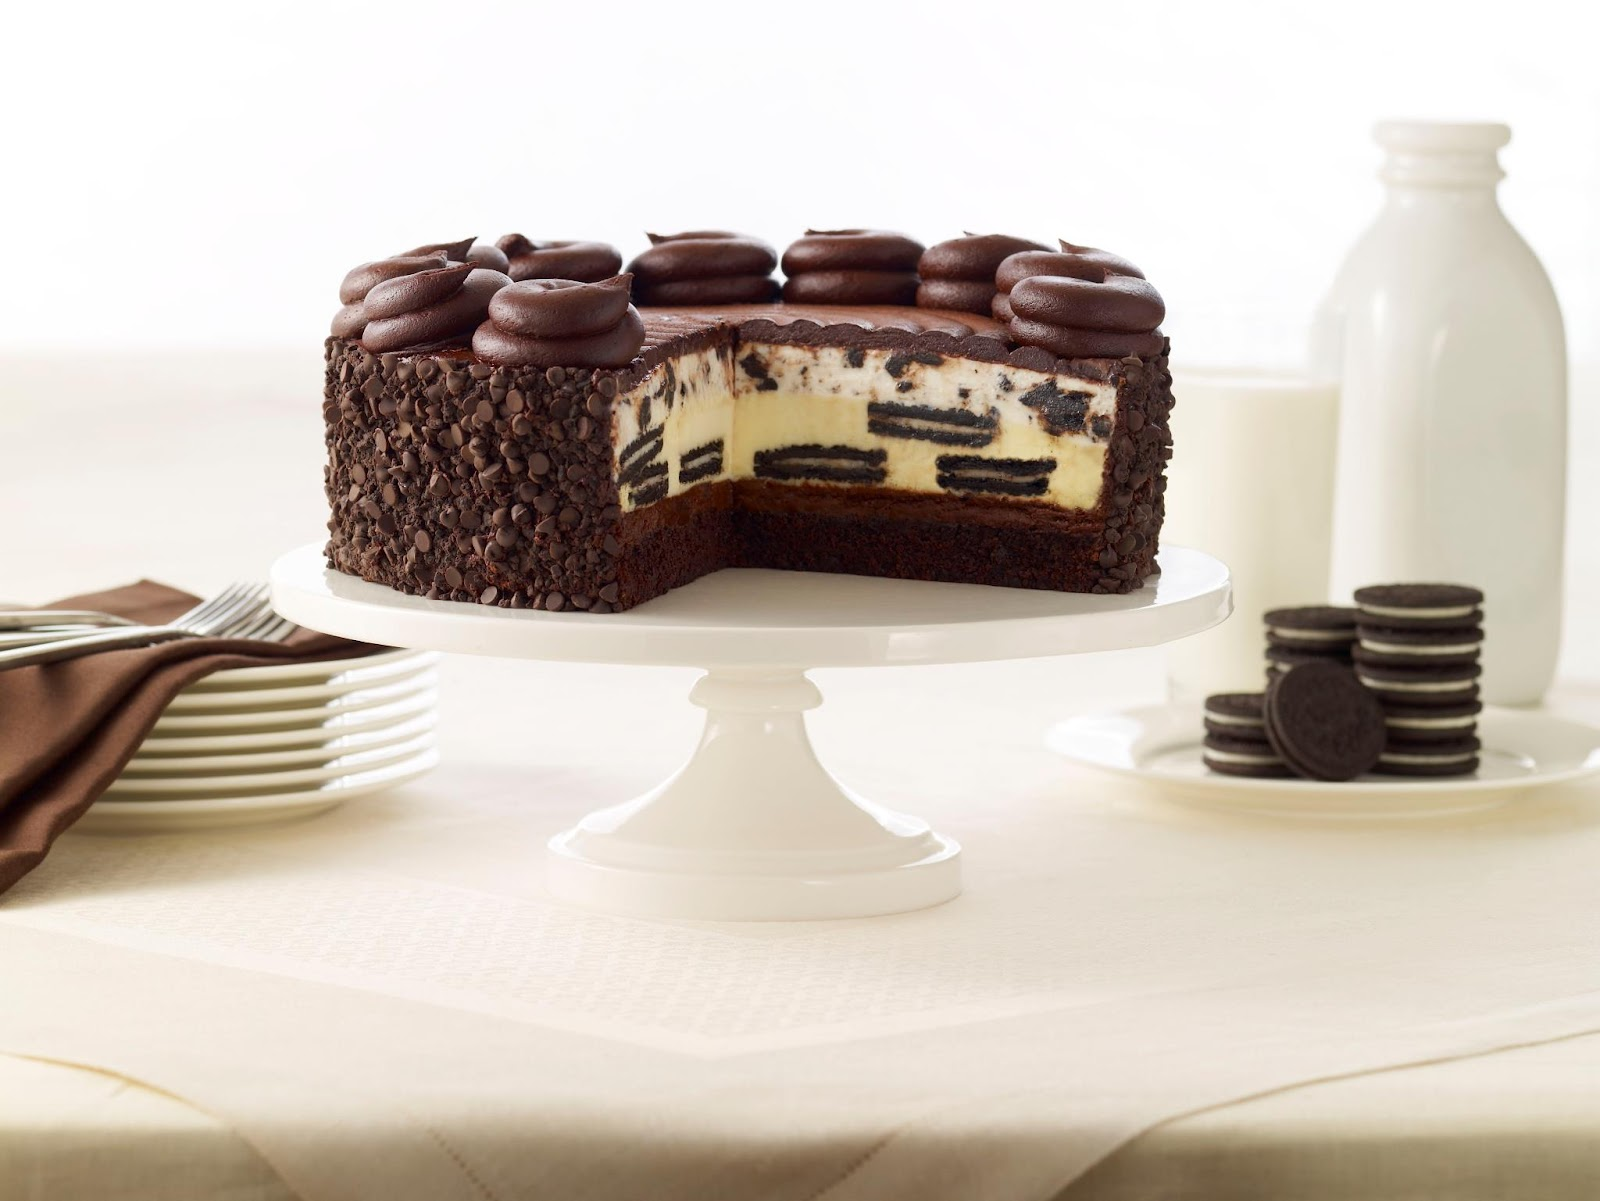 ... cheesecake today, the OREO® Dream Extreme Cheesecake, in honor of the